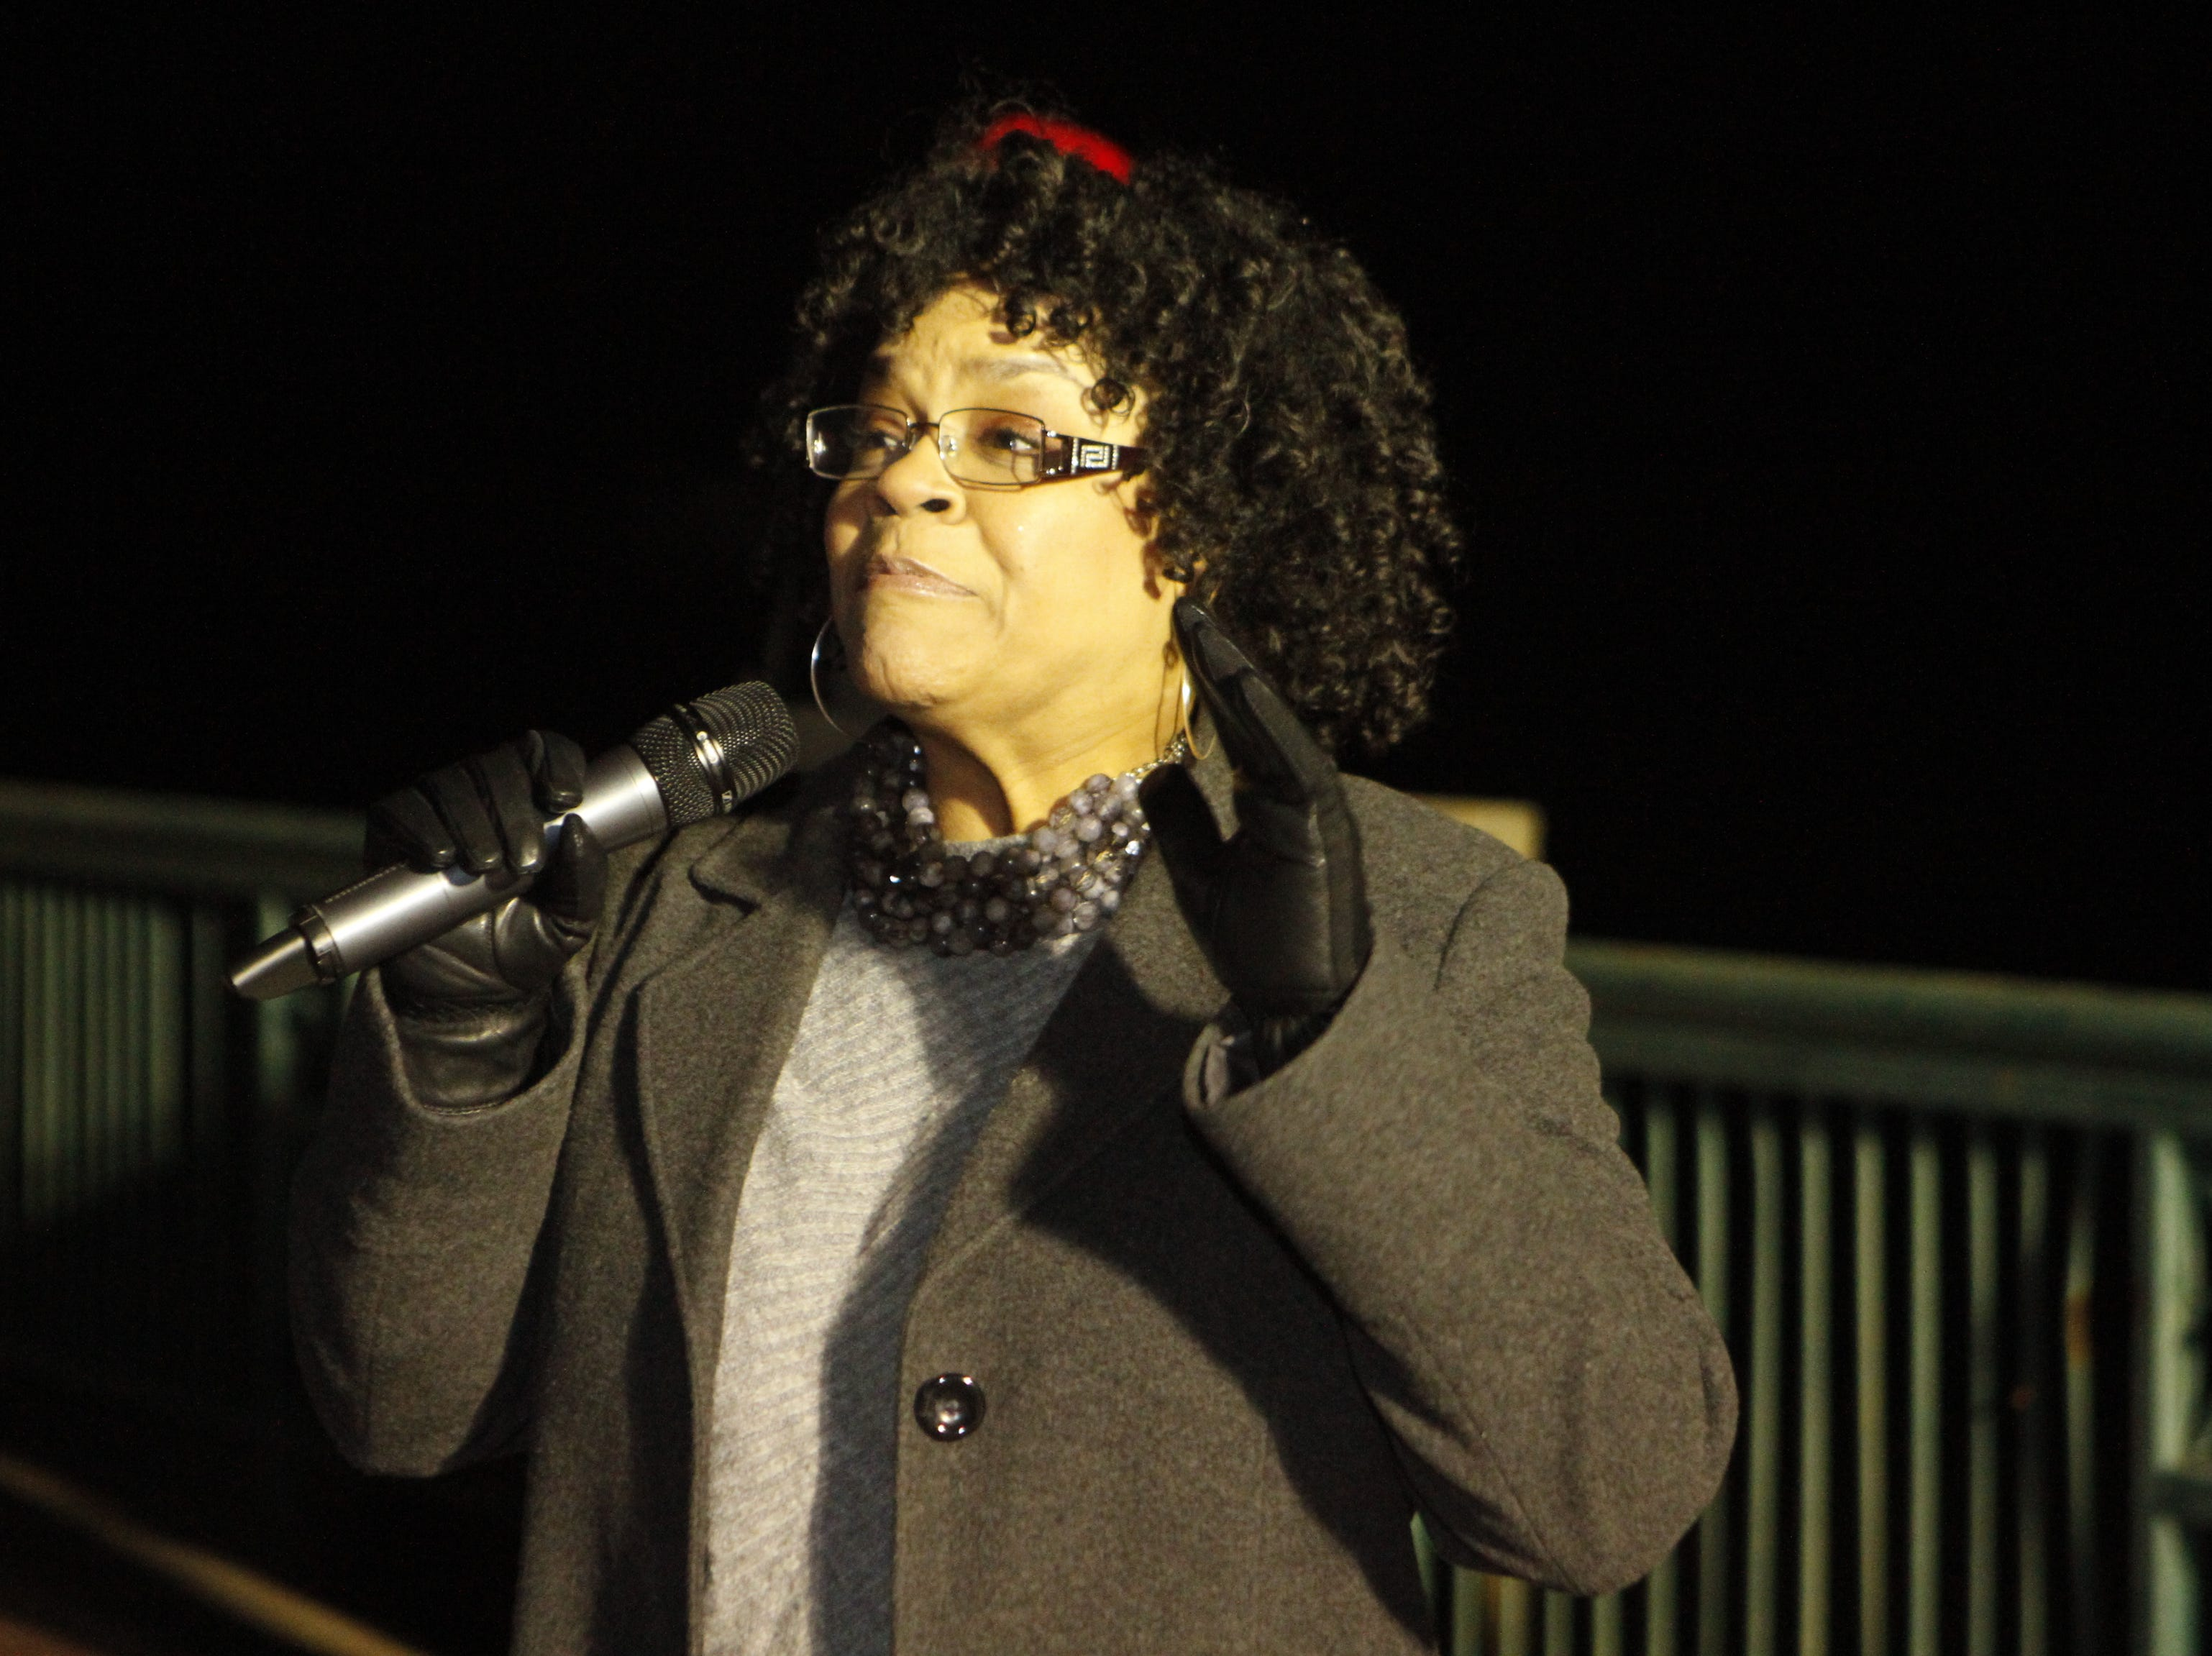 Mayor mayor pro tem Councilwoman Valerie Guzman prepares to flip the switch as the City of Clarksville kicked off its annual Christmas on the Cumberland Tuesday, Nov. 20, 2018, with over 2 million lights in the display.